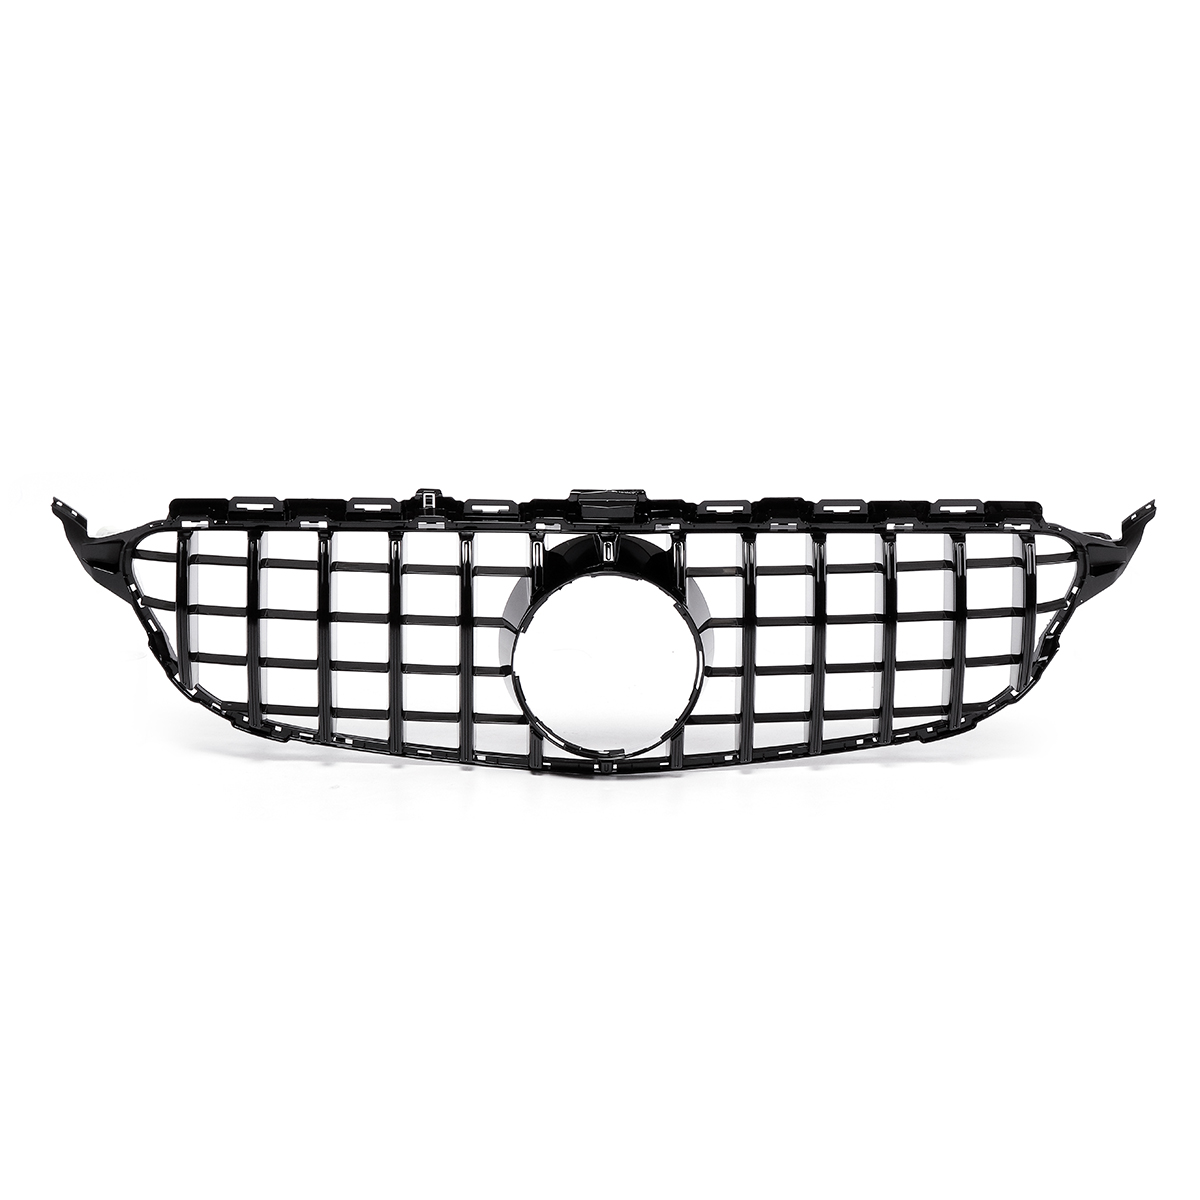 Glossy black upper grille for 2015-2018 mercedes benz w205